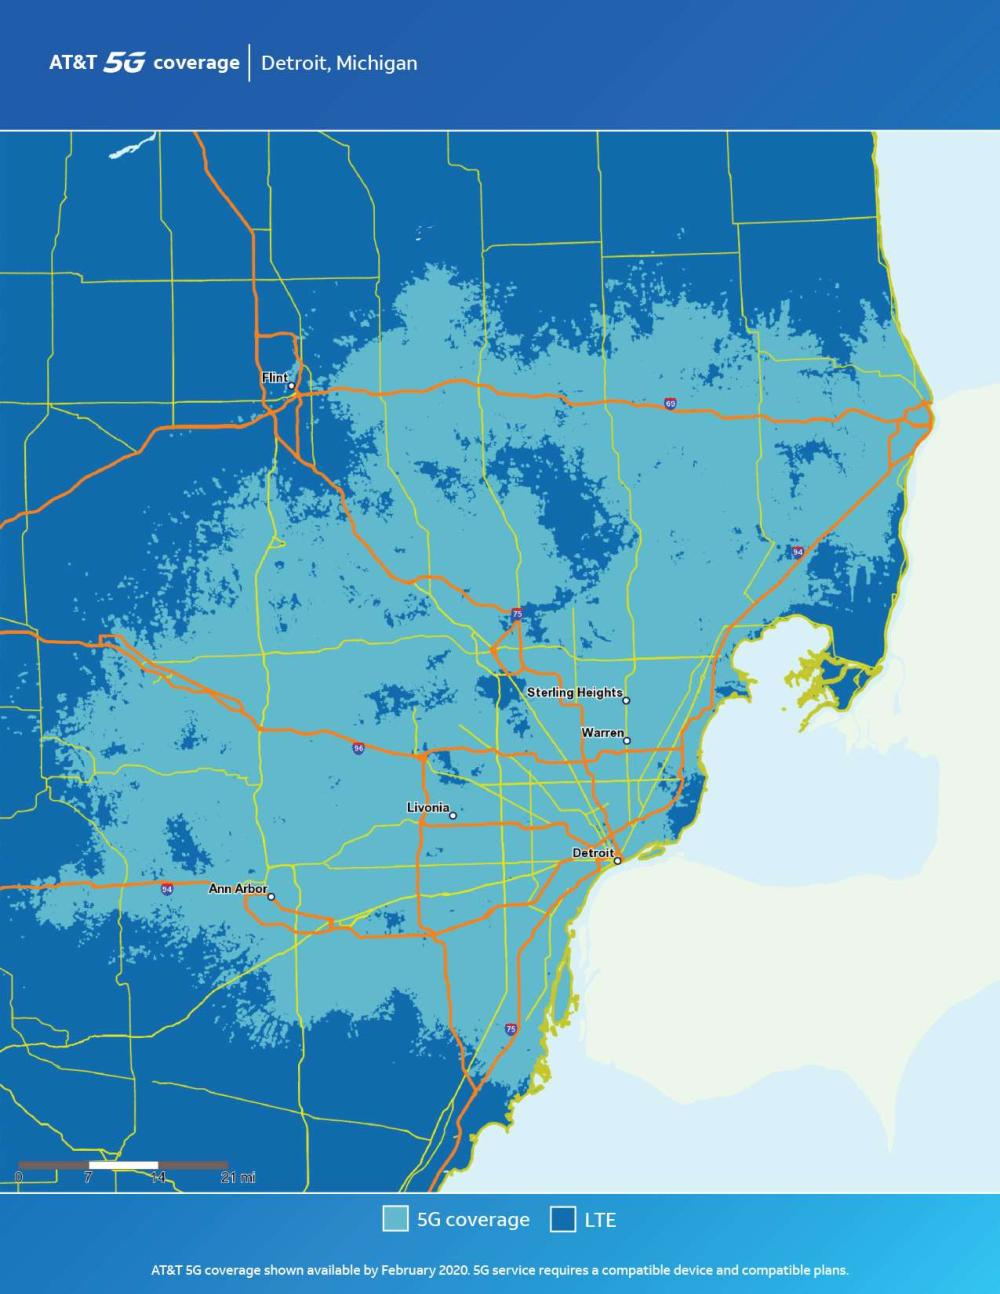 AT&T Detroit 5G Coverage